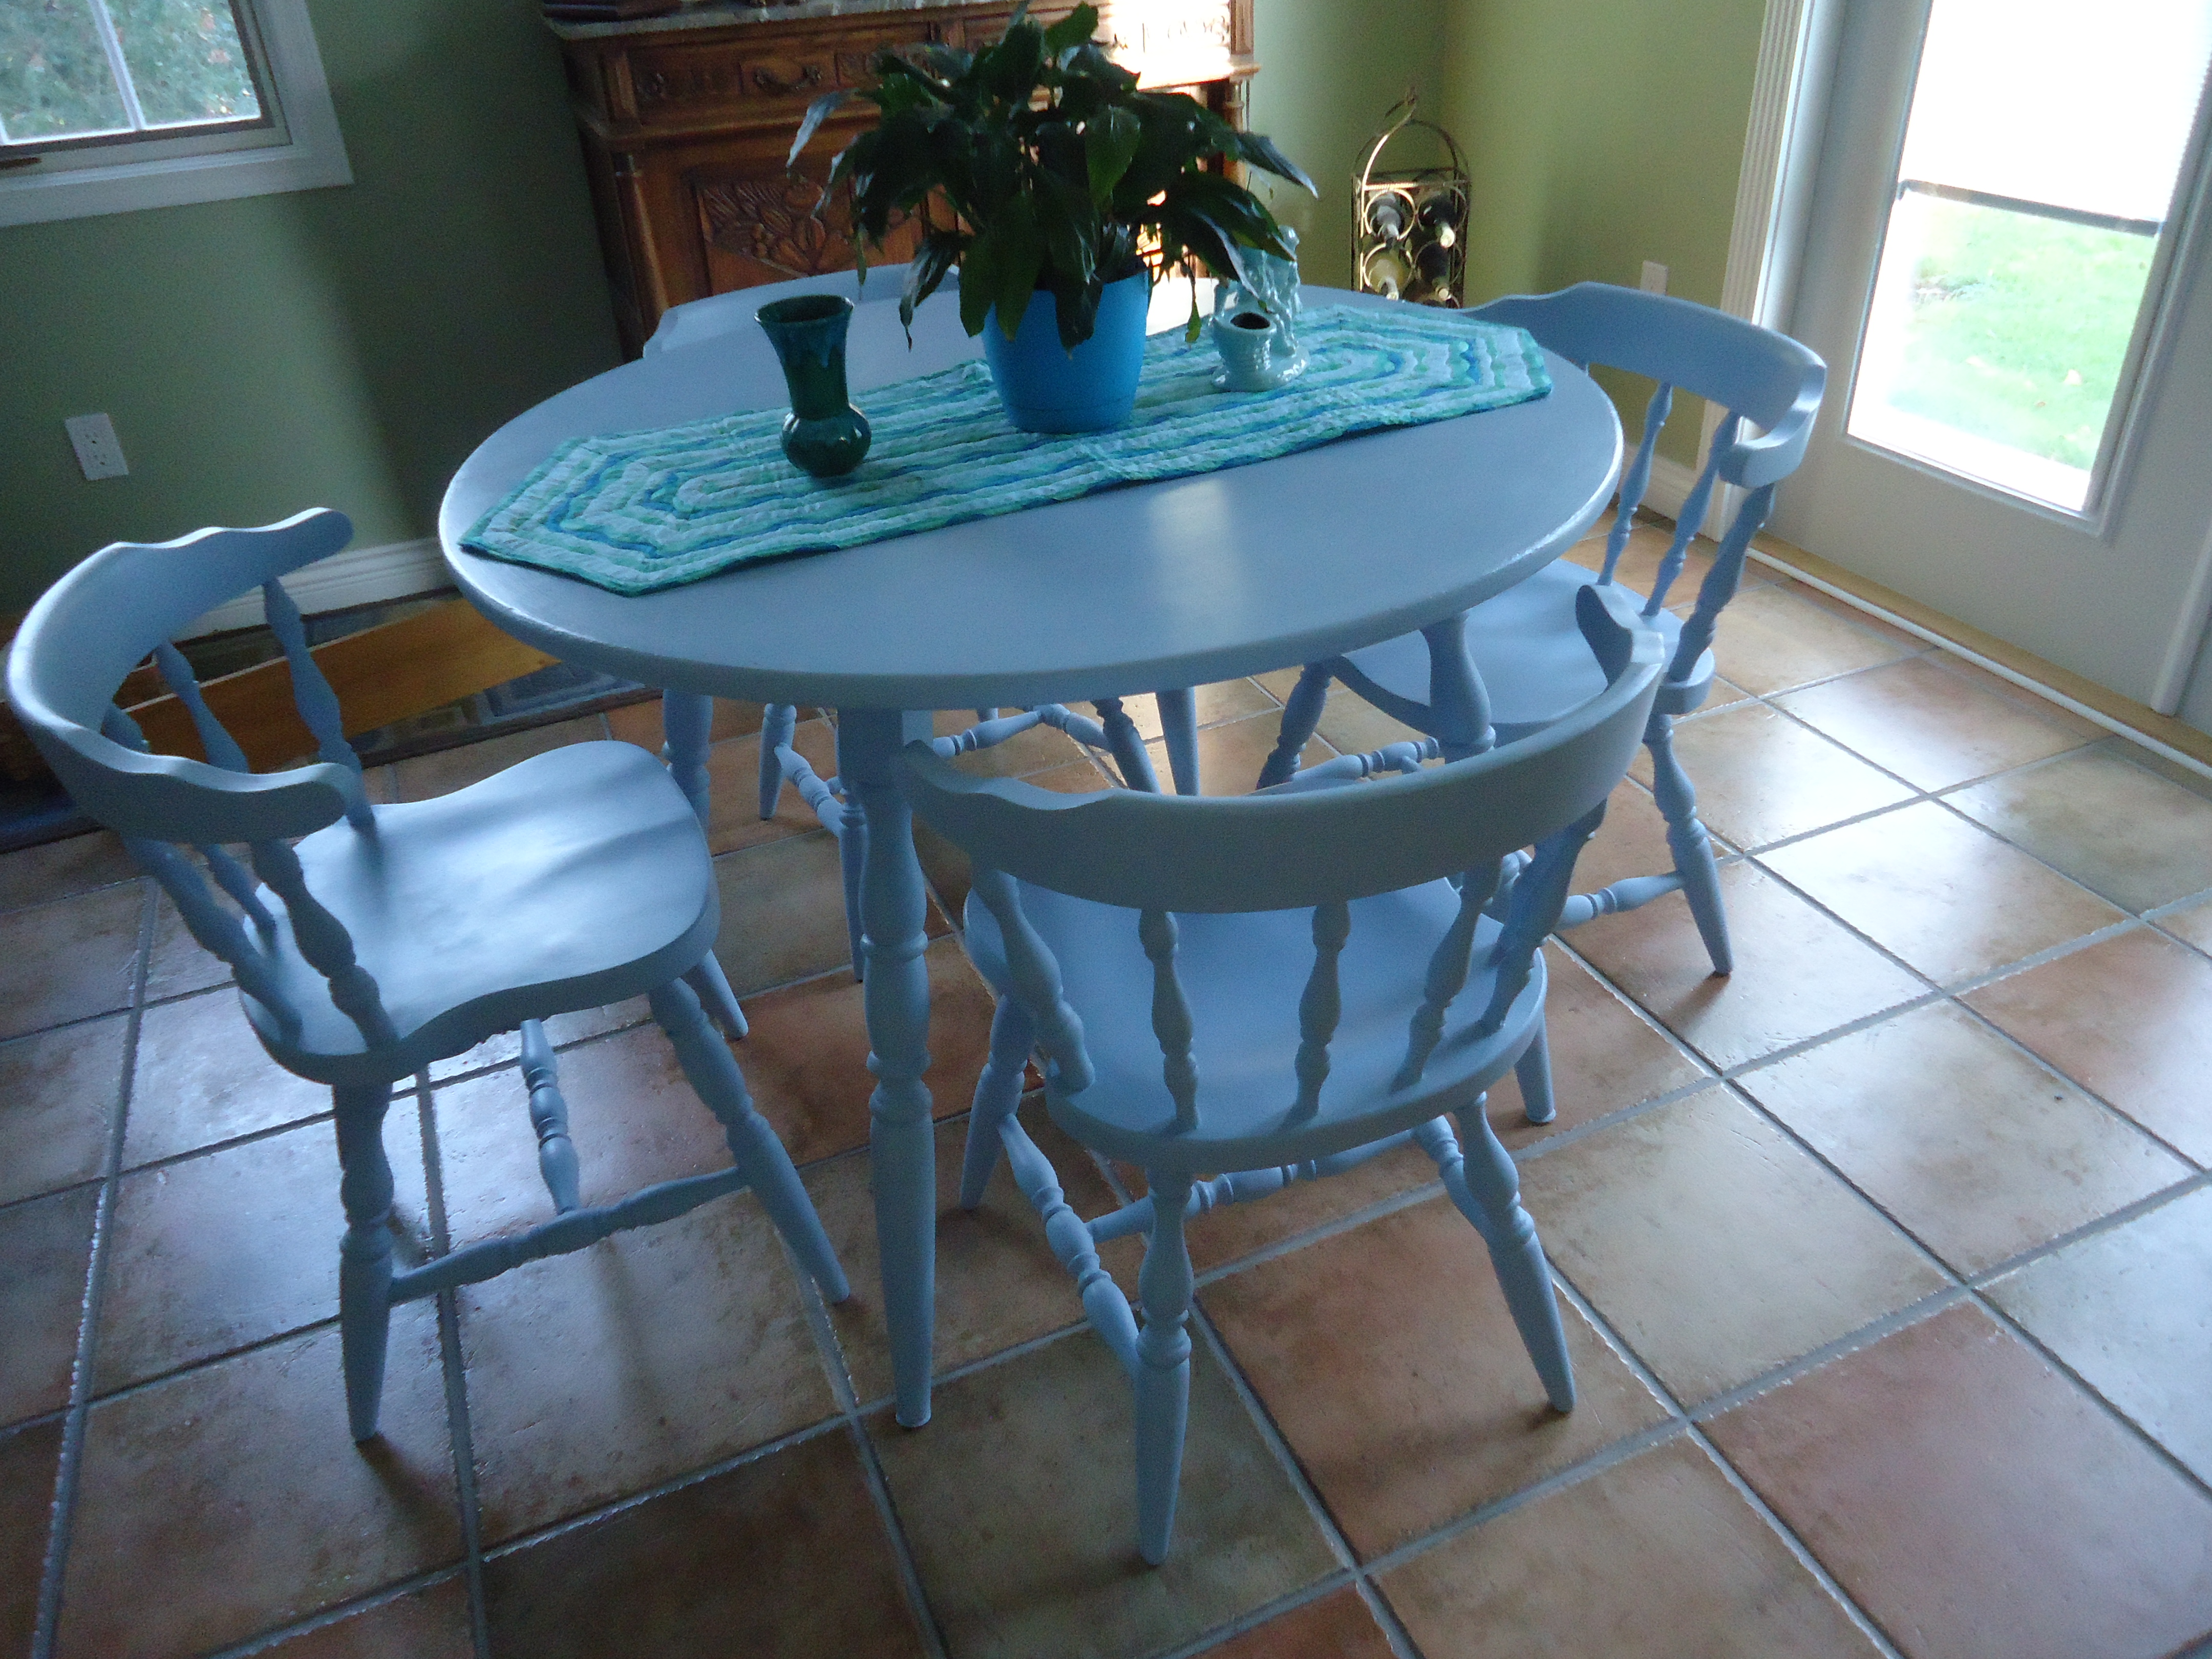 Hubby Says To Get It Through The Door, He Has To Remove Two Of The Table  Legs. Ugh! Are You Kidding? Lets Hope Nothing Goes Wrong With The ...